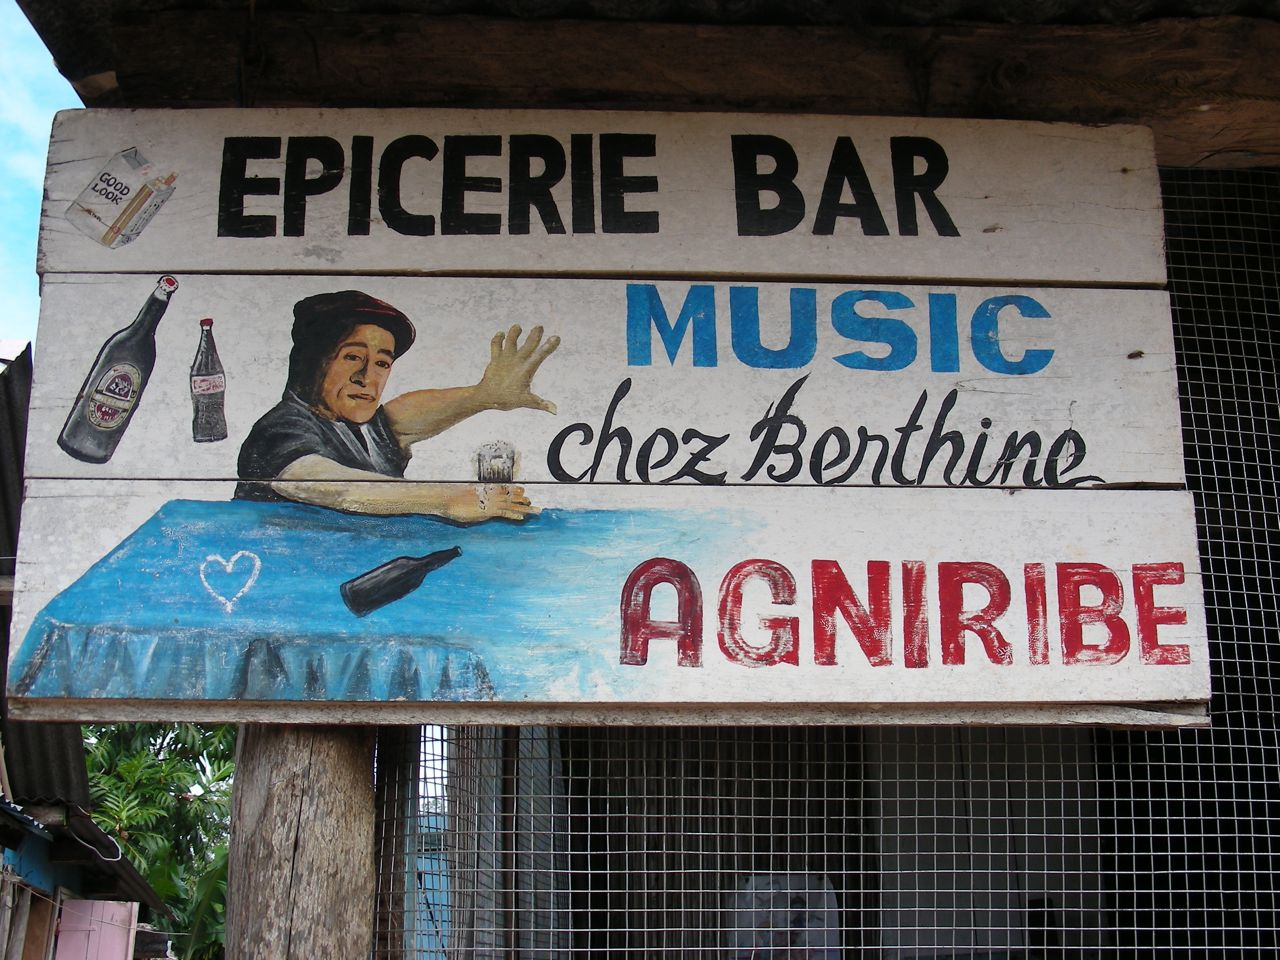 Epicerie bar music